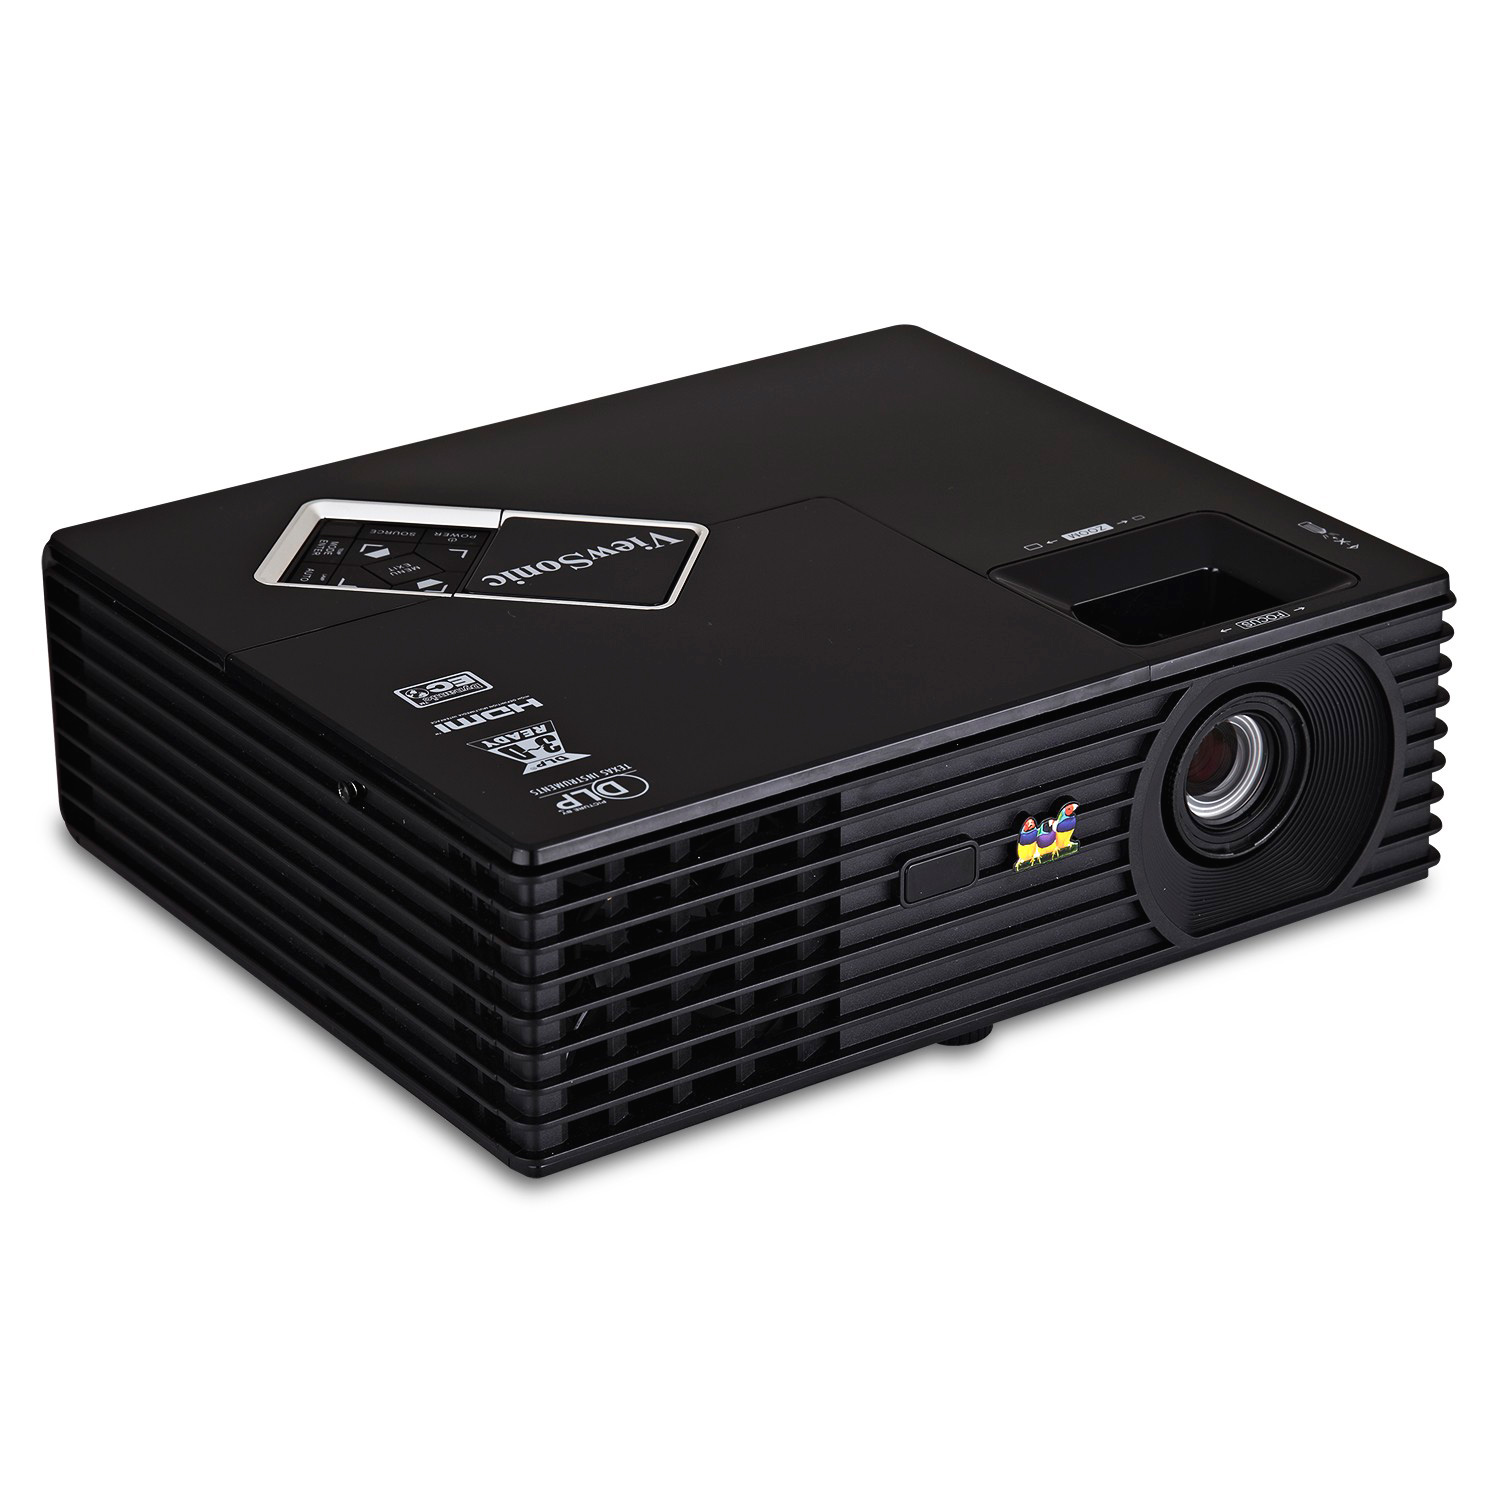 Viewsonic pjd5134 3000 lumens 3d ready dlp portable projector for Dlp portable projector